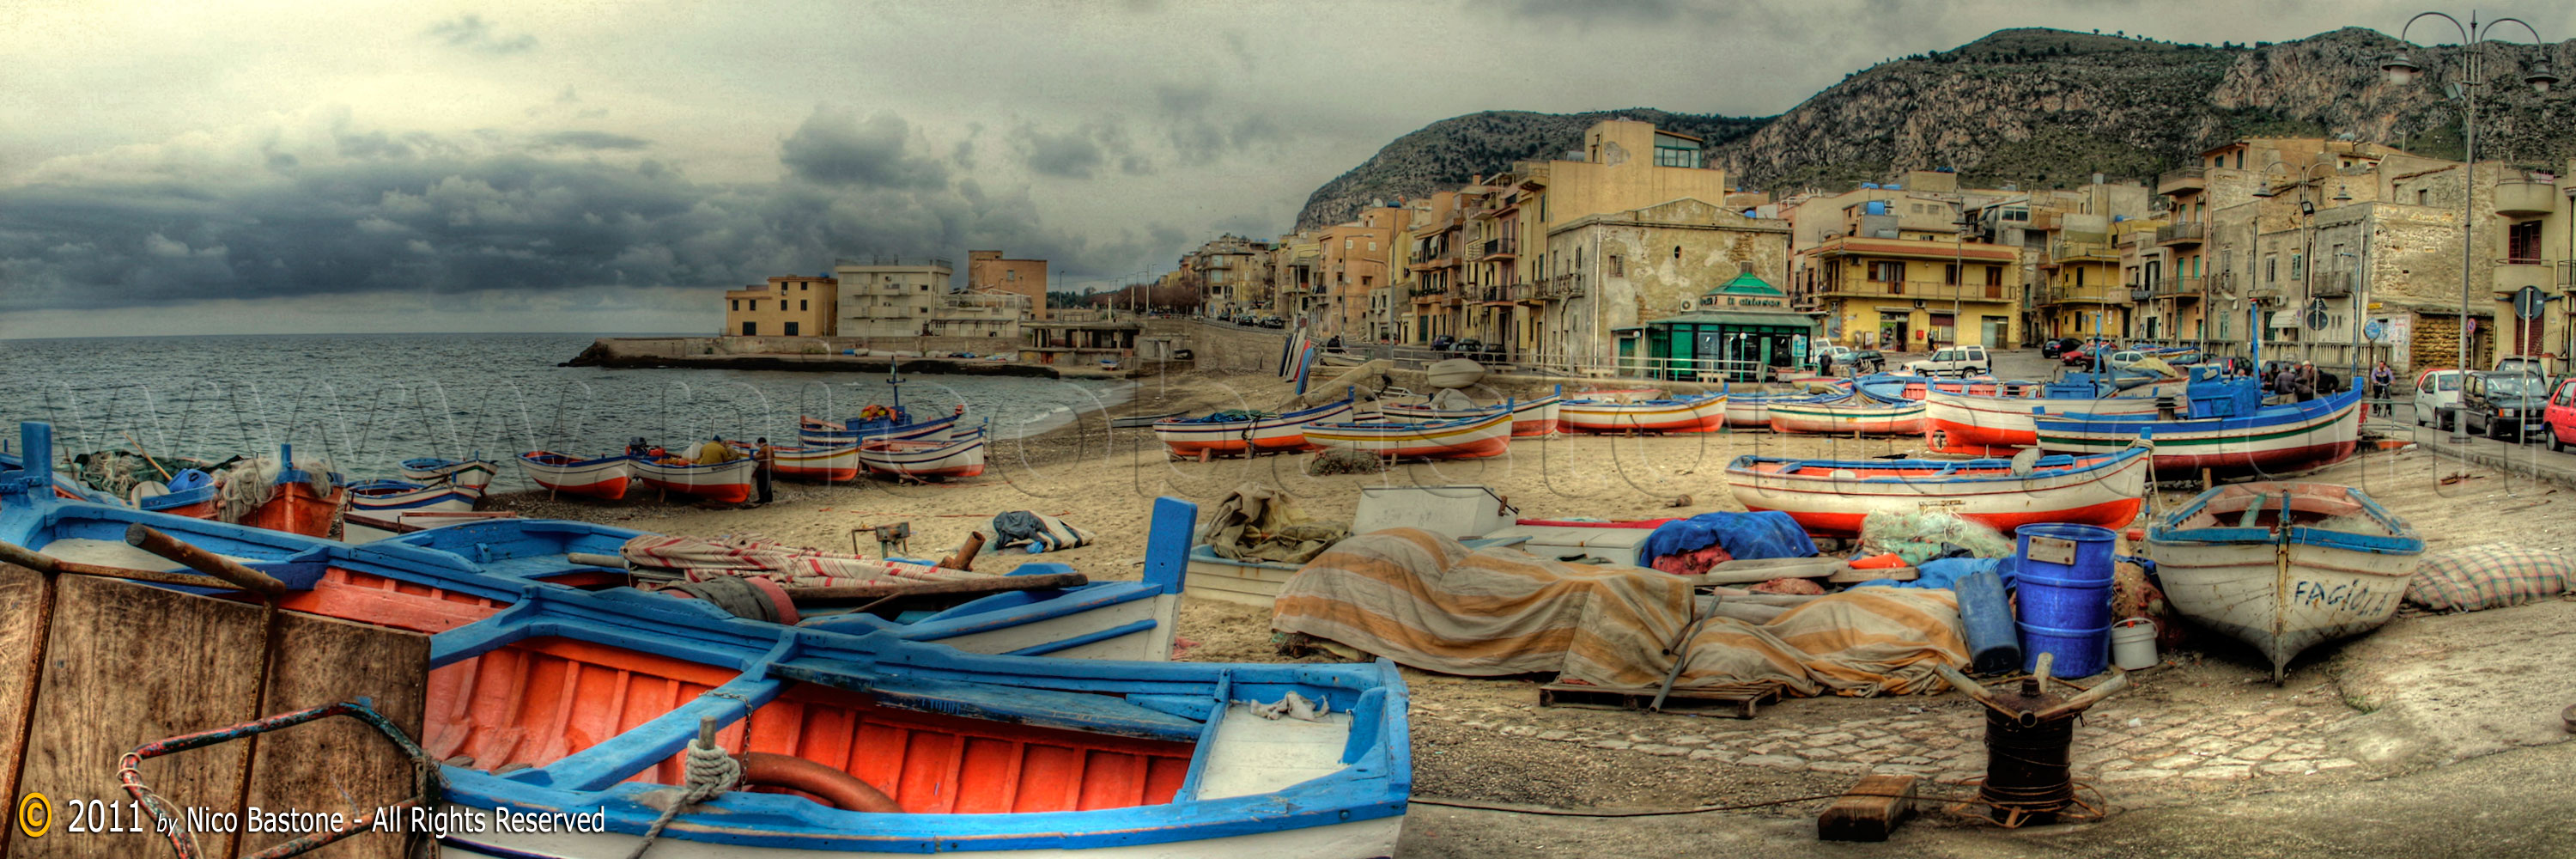 "Aspra, Bagheria PA ""Panorama con barche. - A large view with boats. 3000x1000 Sicilia, Sicily, Sicile Foto, photos, fotos, immagini, images, pics"